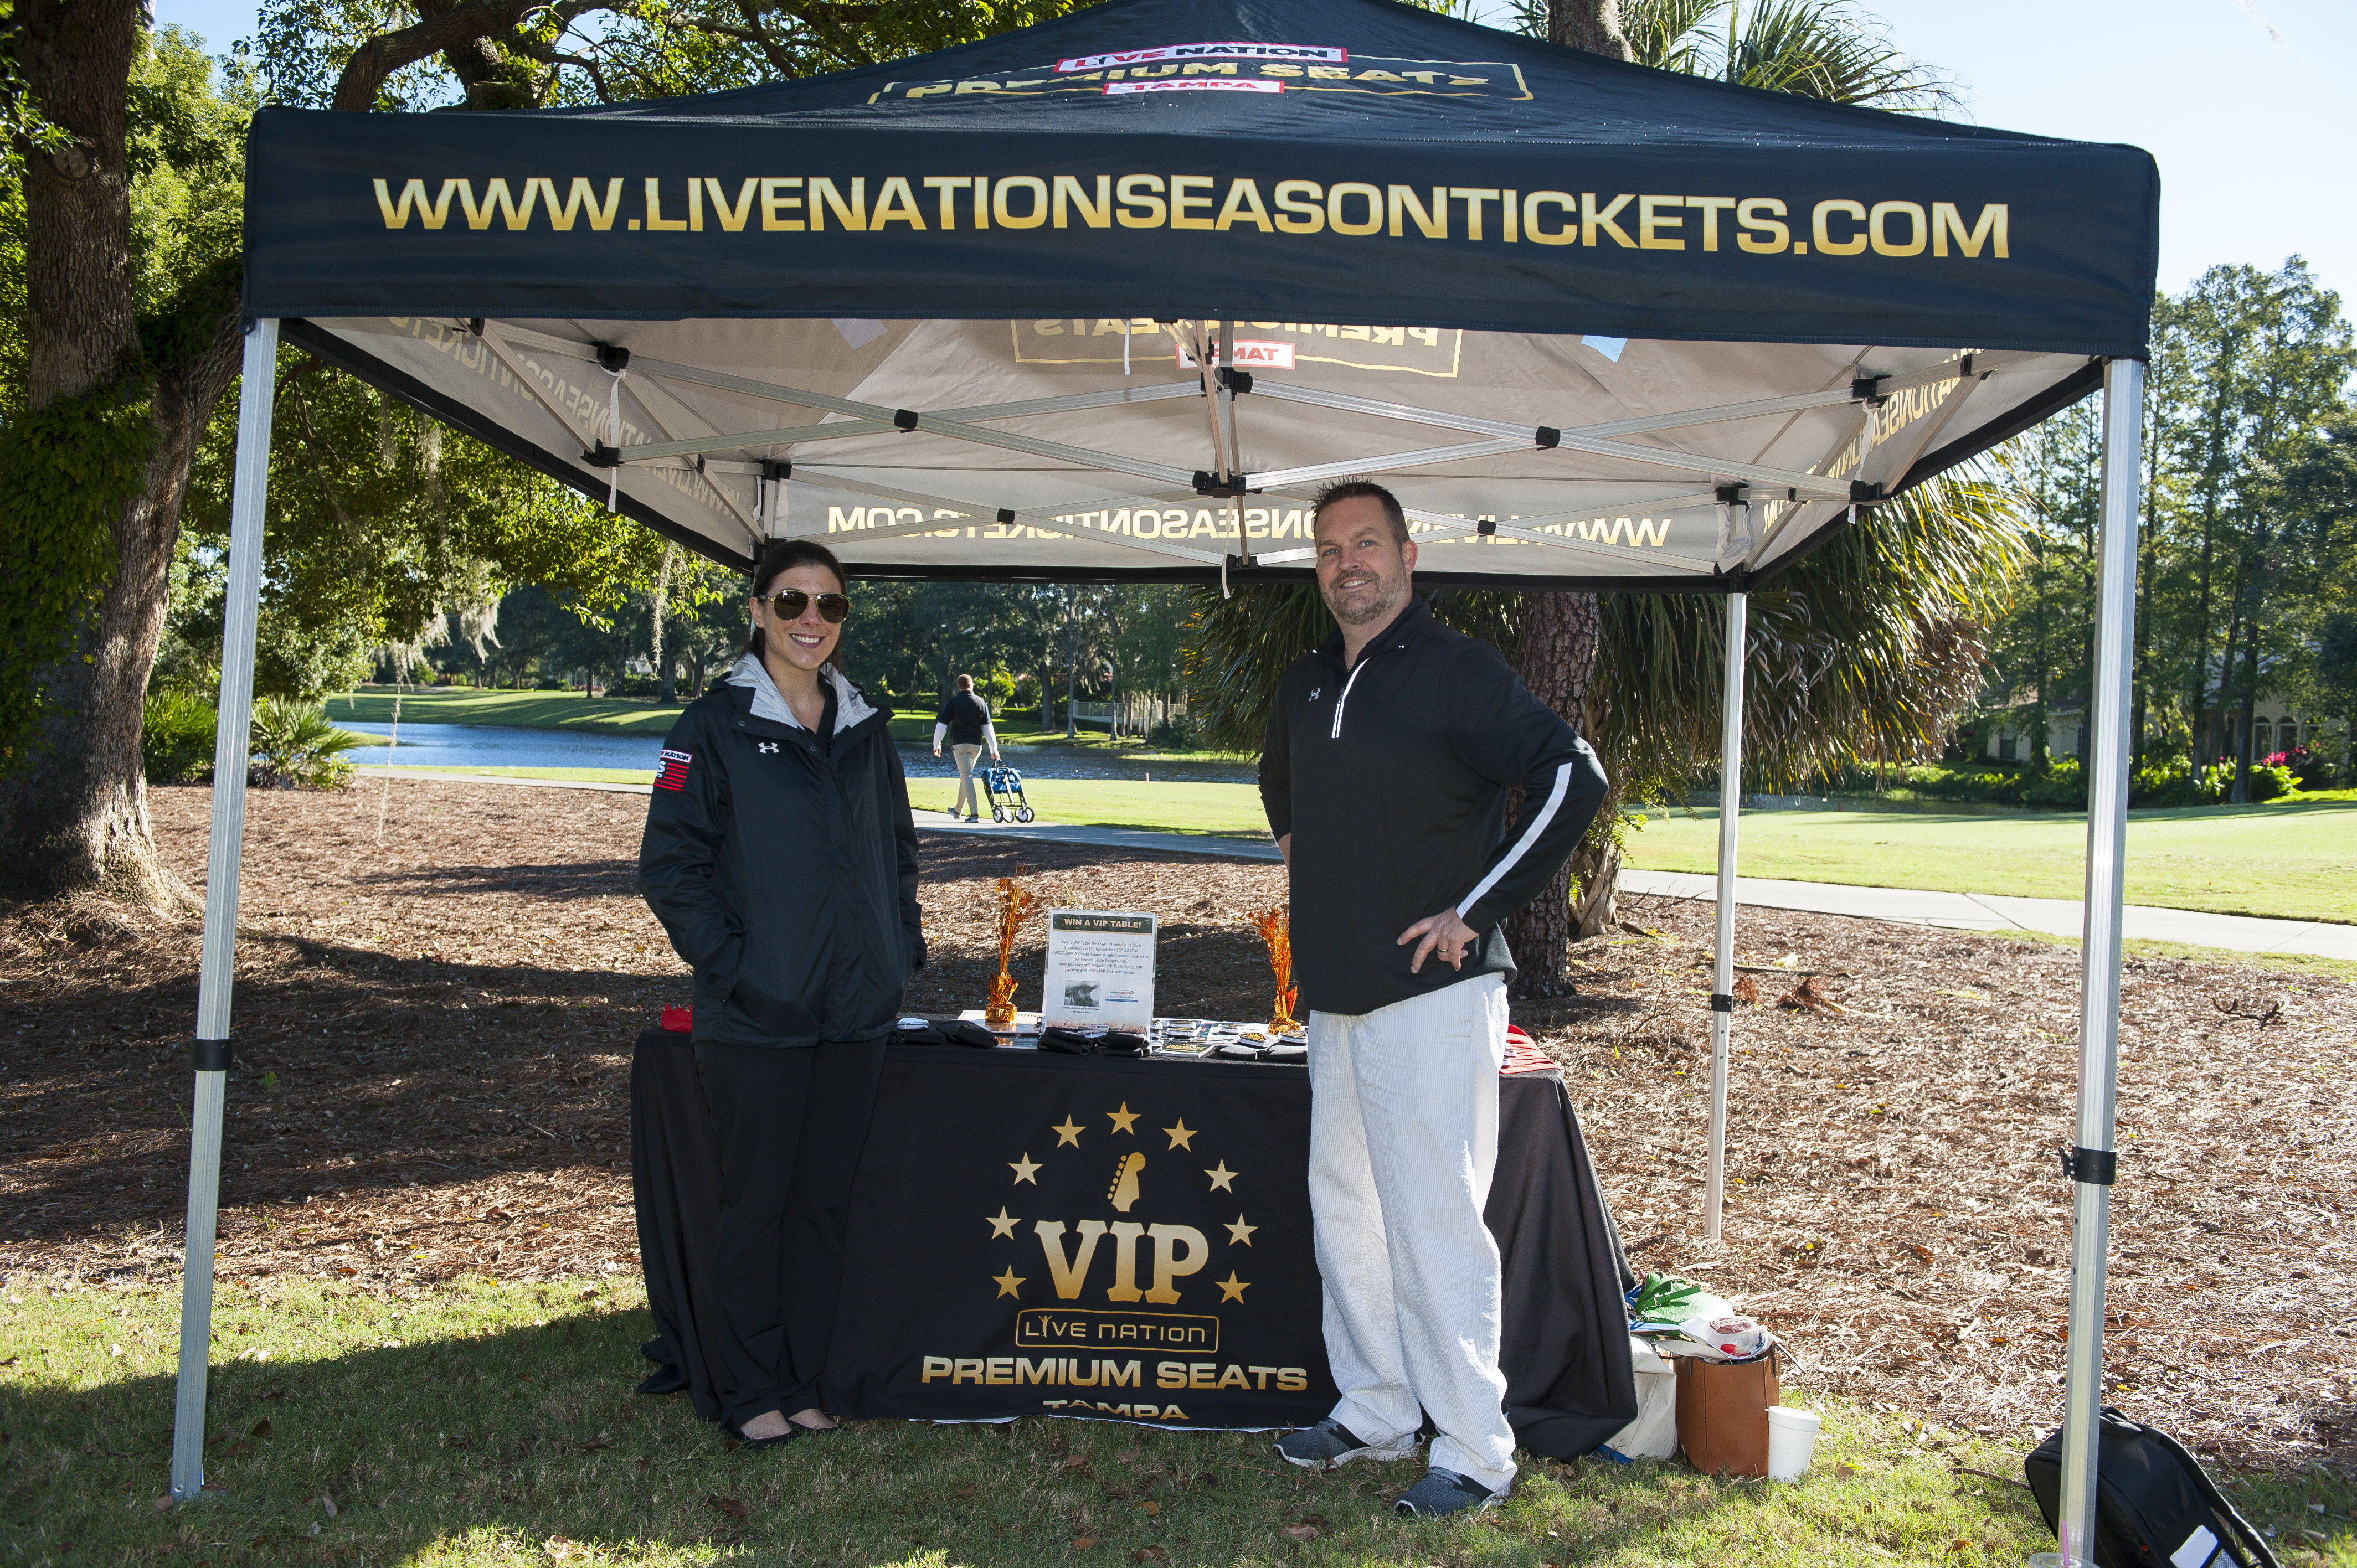 Special thanks to our Flop Shot Sponsor, MidFlorida Credit Union Premium Seating, represented by Brian Gallogly and Maria Pingeton.